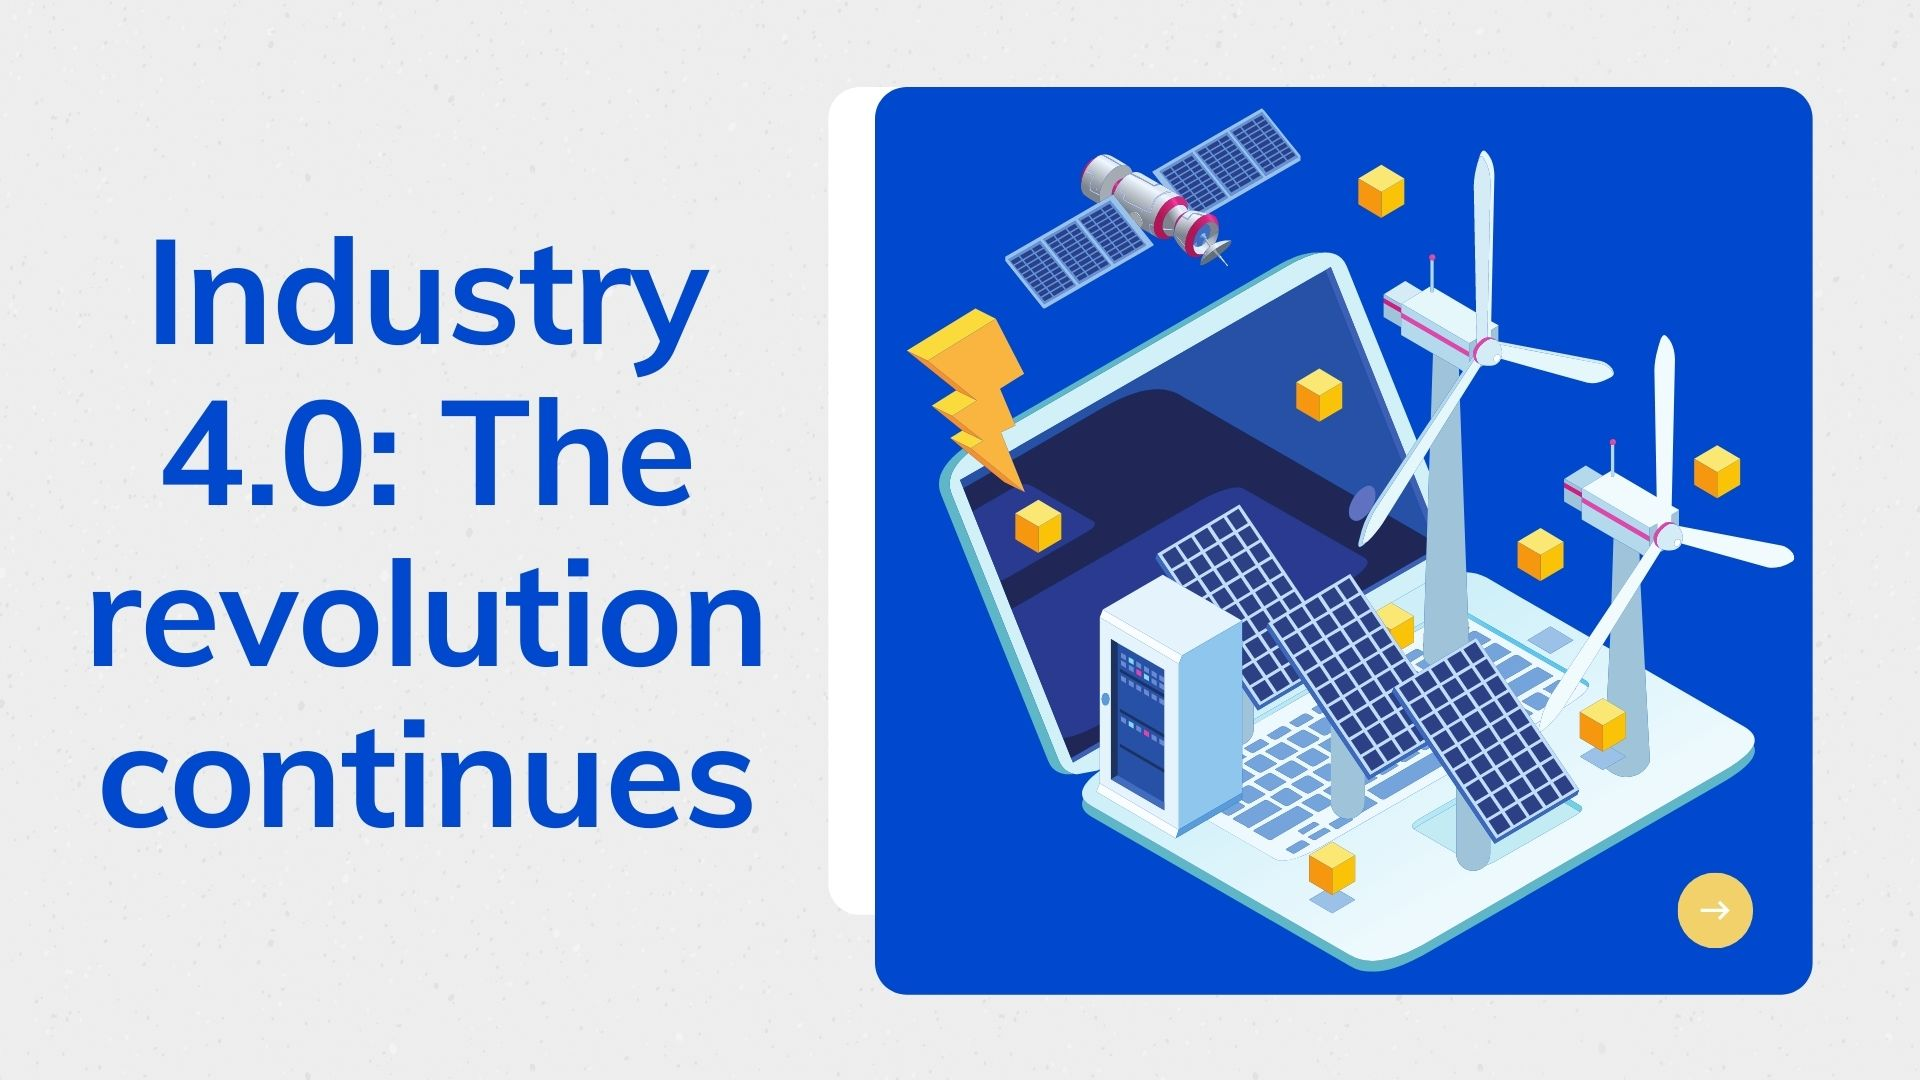 Industry 4.0: The revolution continues